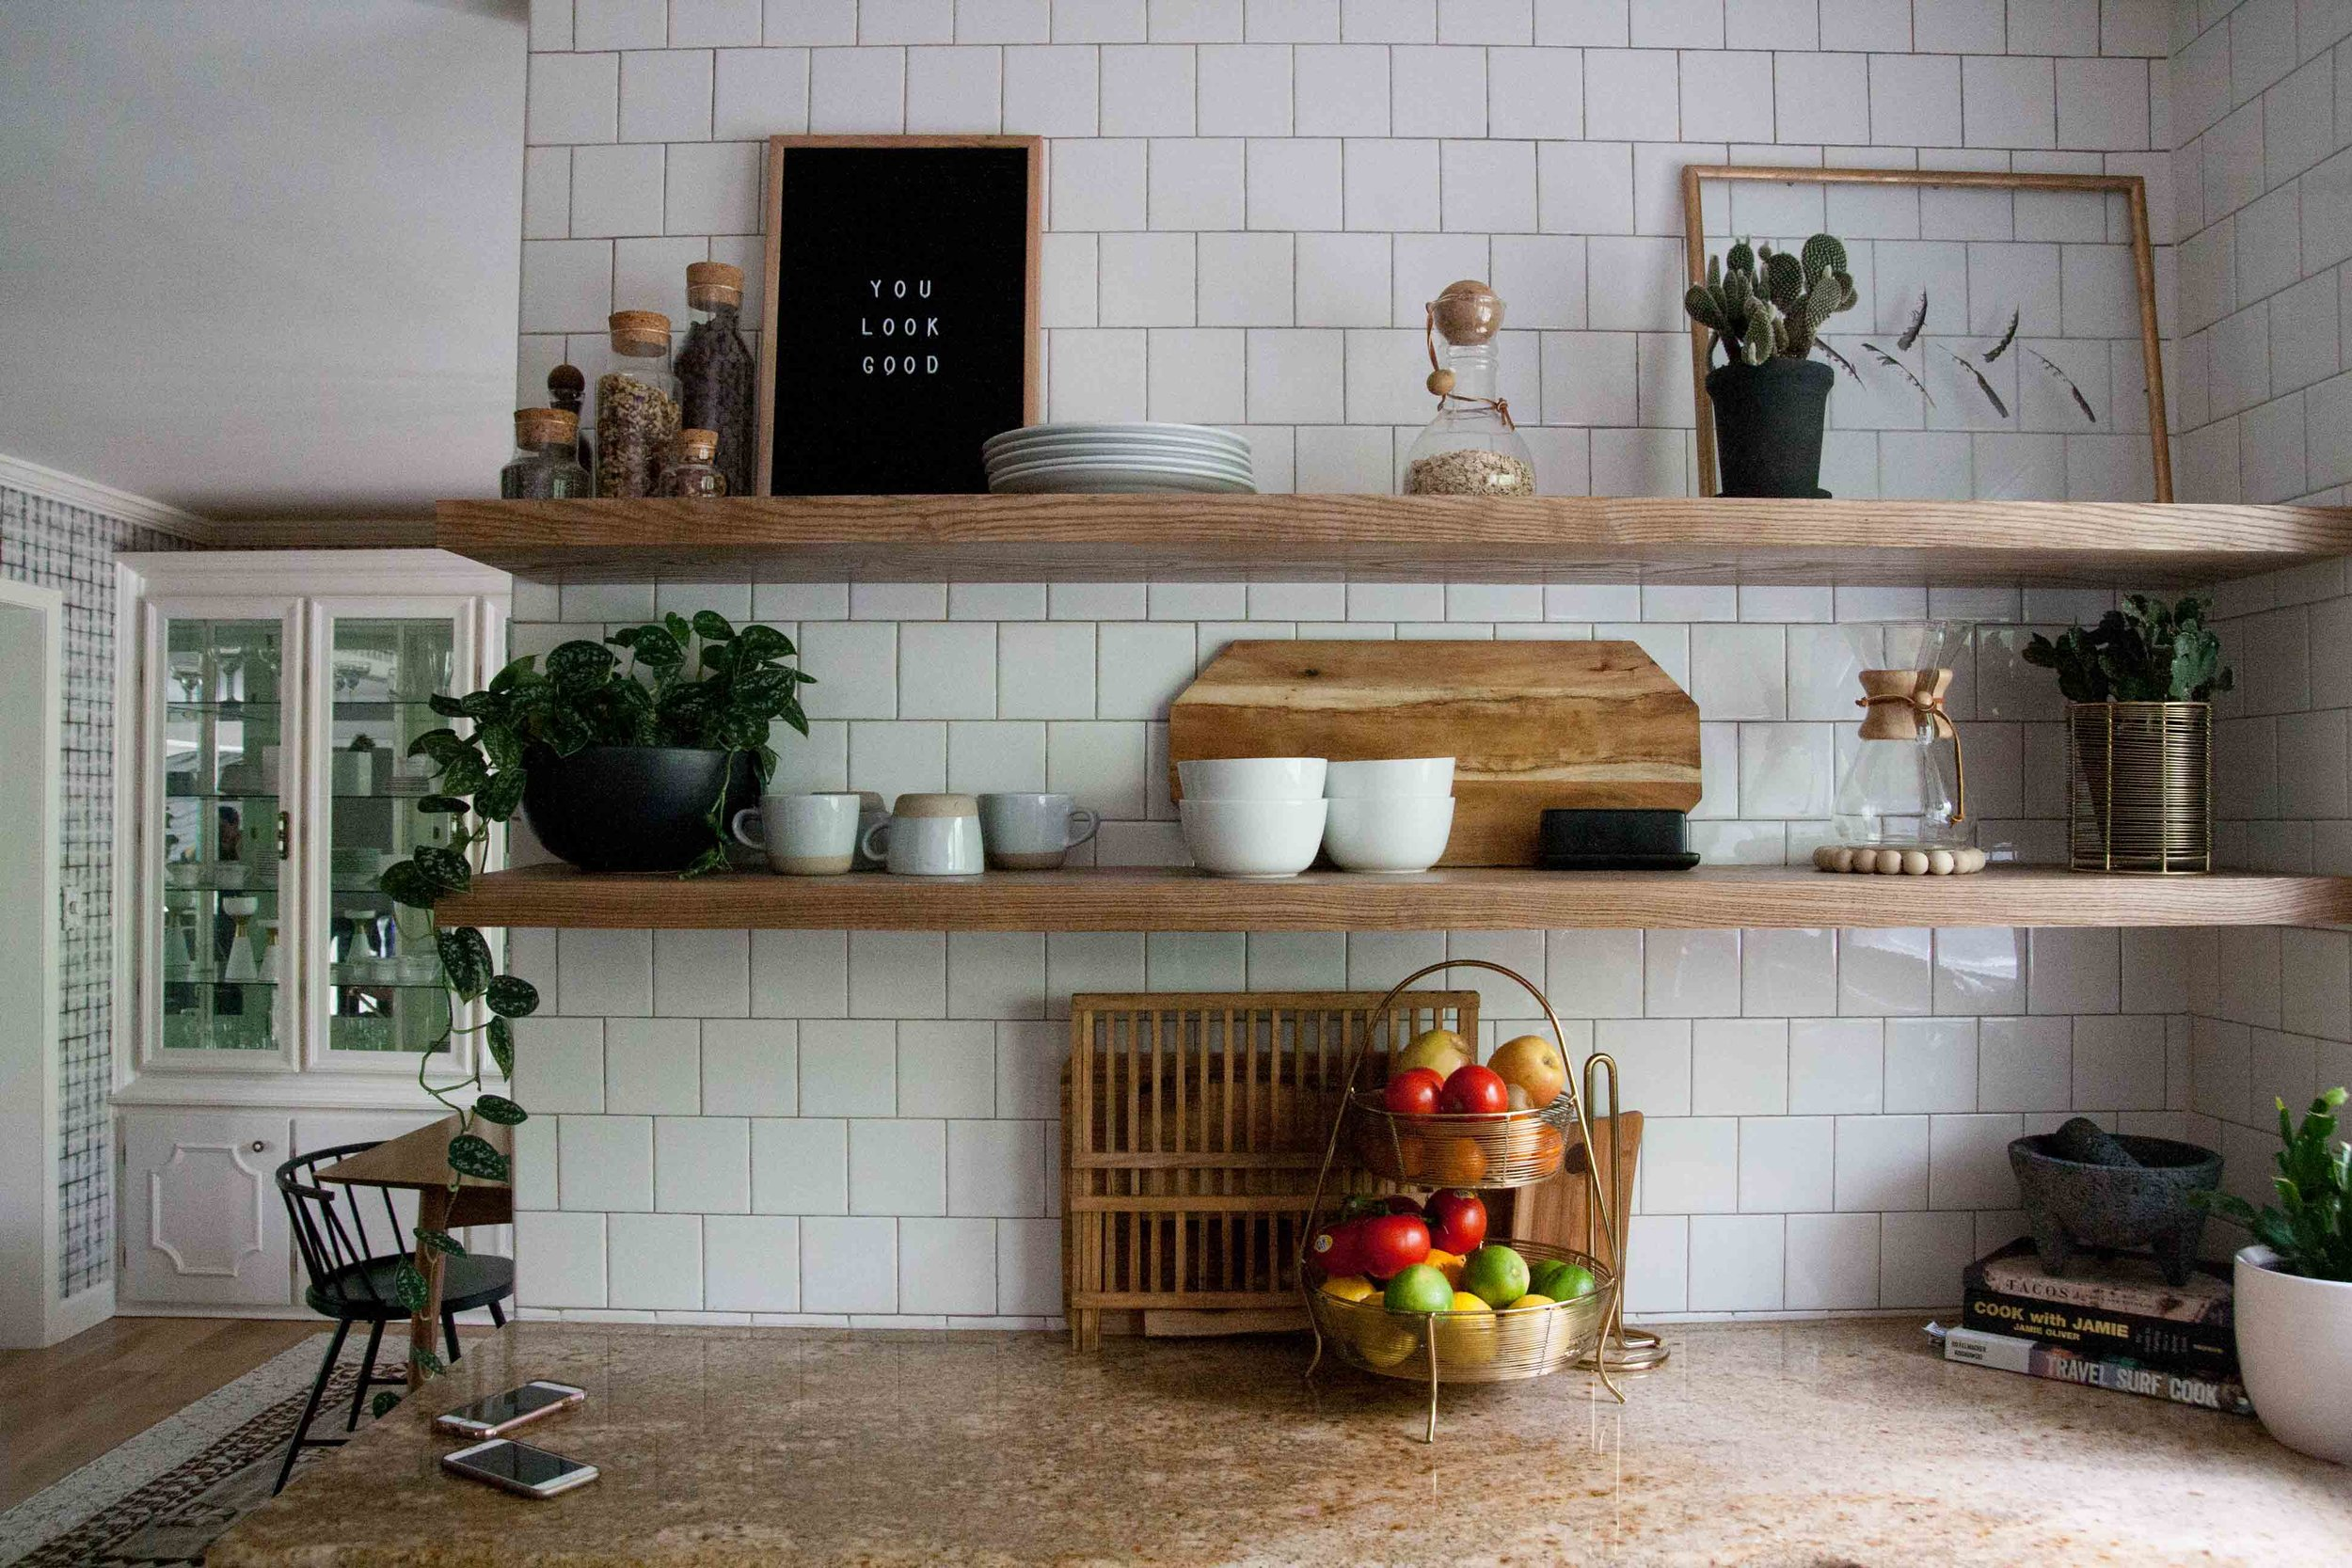 Bigger_than_the_three_of_us_home_tour_kitchen_shelves